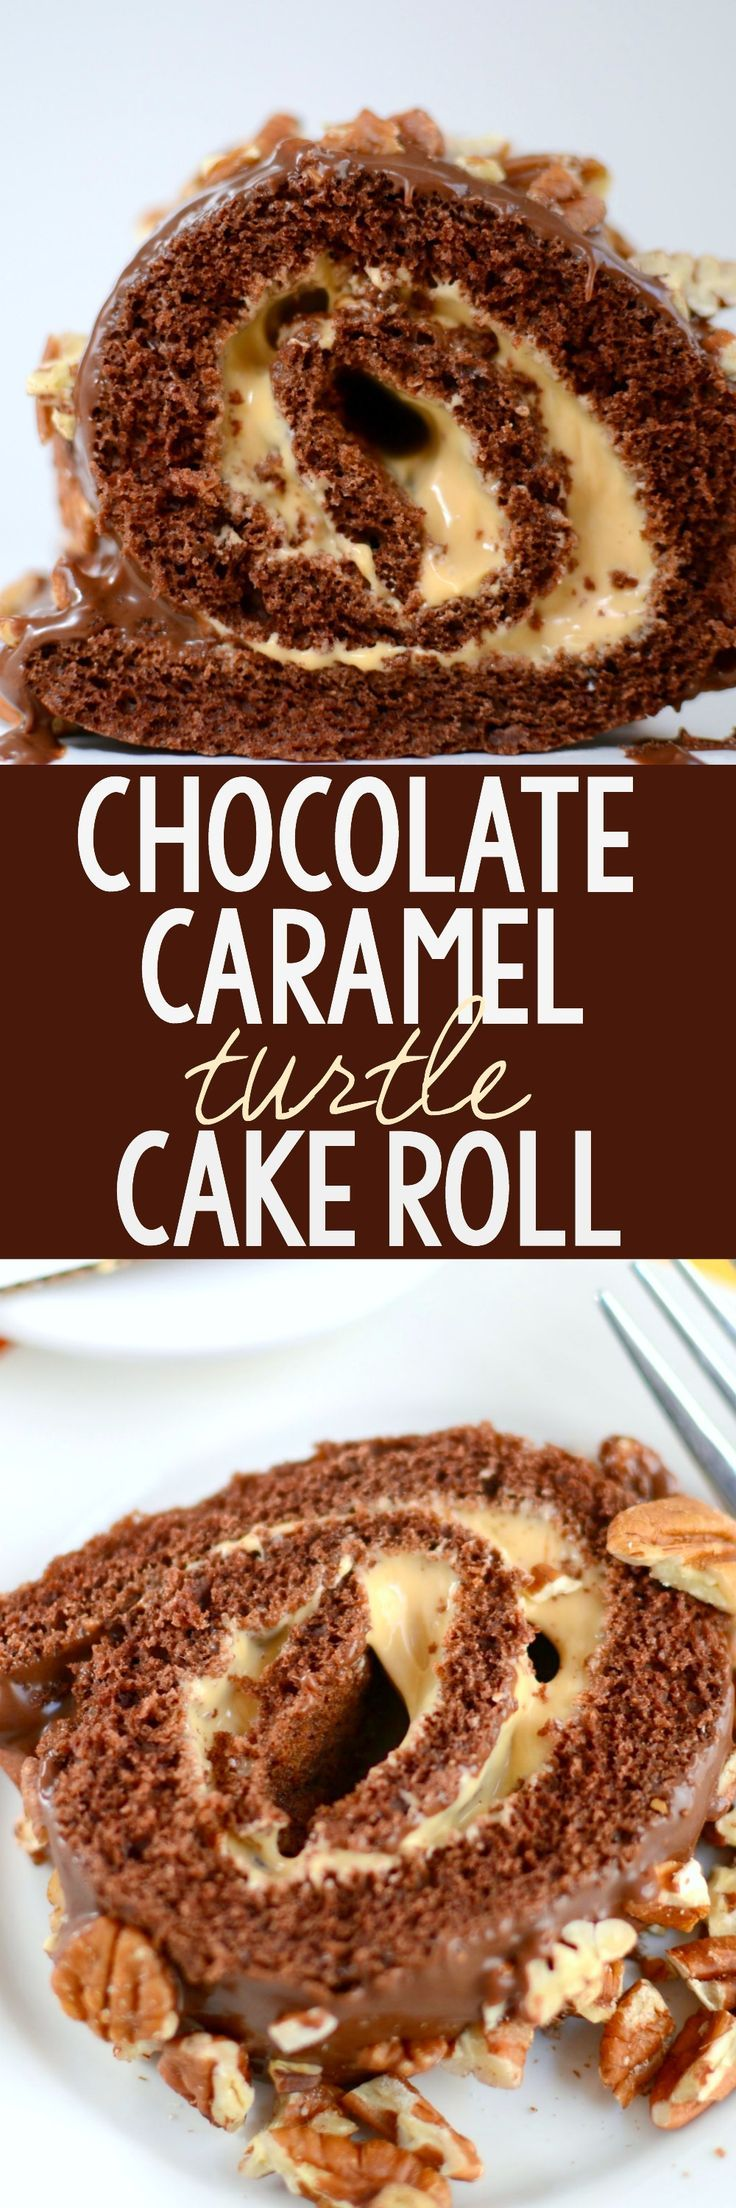 Chocolate Caramel Turtle Cake Roll - this EASY cake roll recipe starts with a cake mix! The chocolate cake roll is filled with caramel ganache and topped with chocolate ganache and pecans, like a turtle candy!